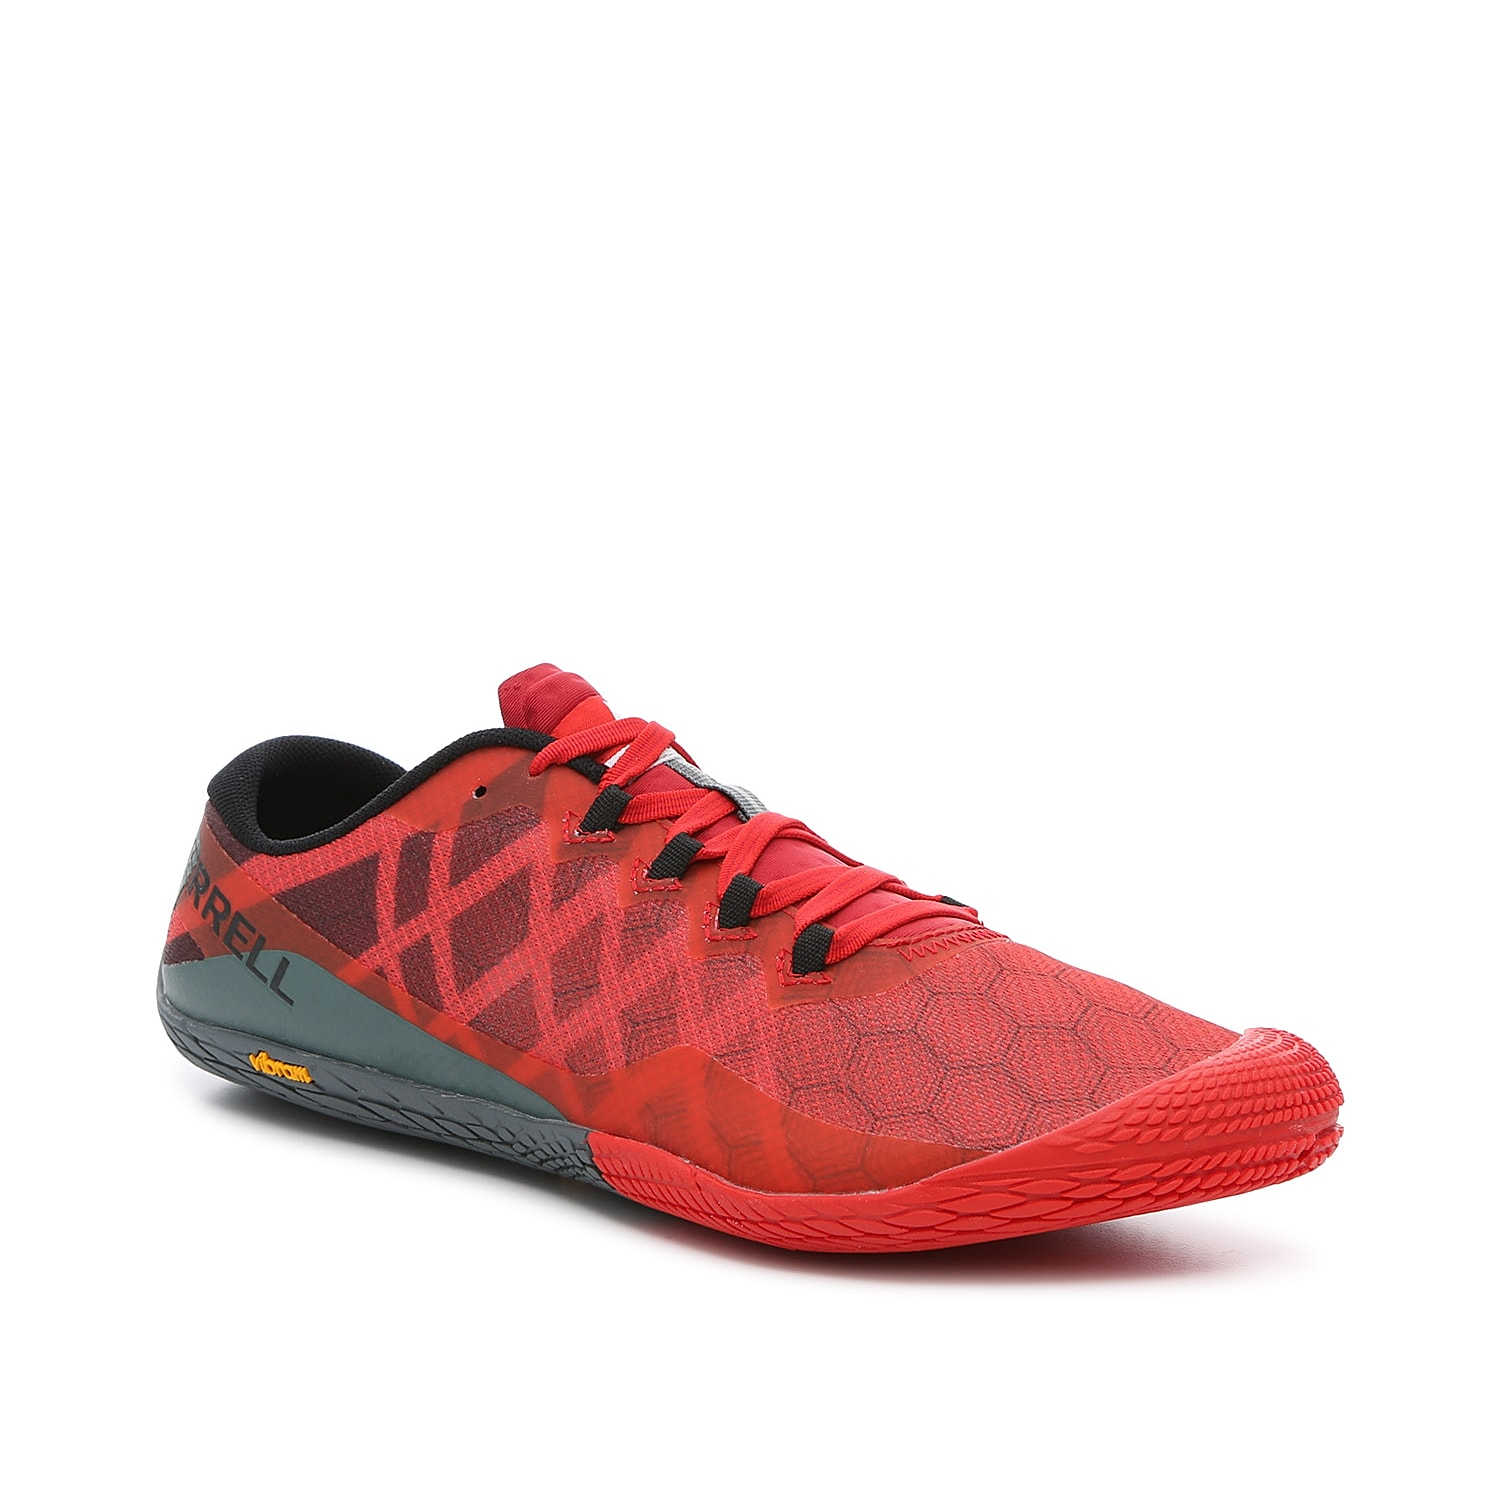 The Vapor Glove 3 running shoe by Merrell makes you feel natural, while providing protection and comfort. This barefoot shoe is built with nylon upper, lightweight EVA midsole and grippy rubber sole.